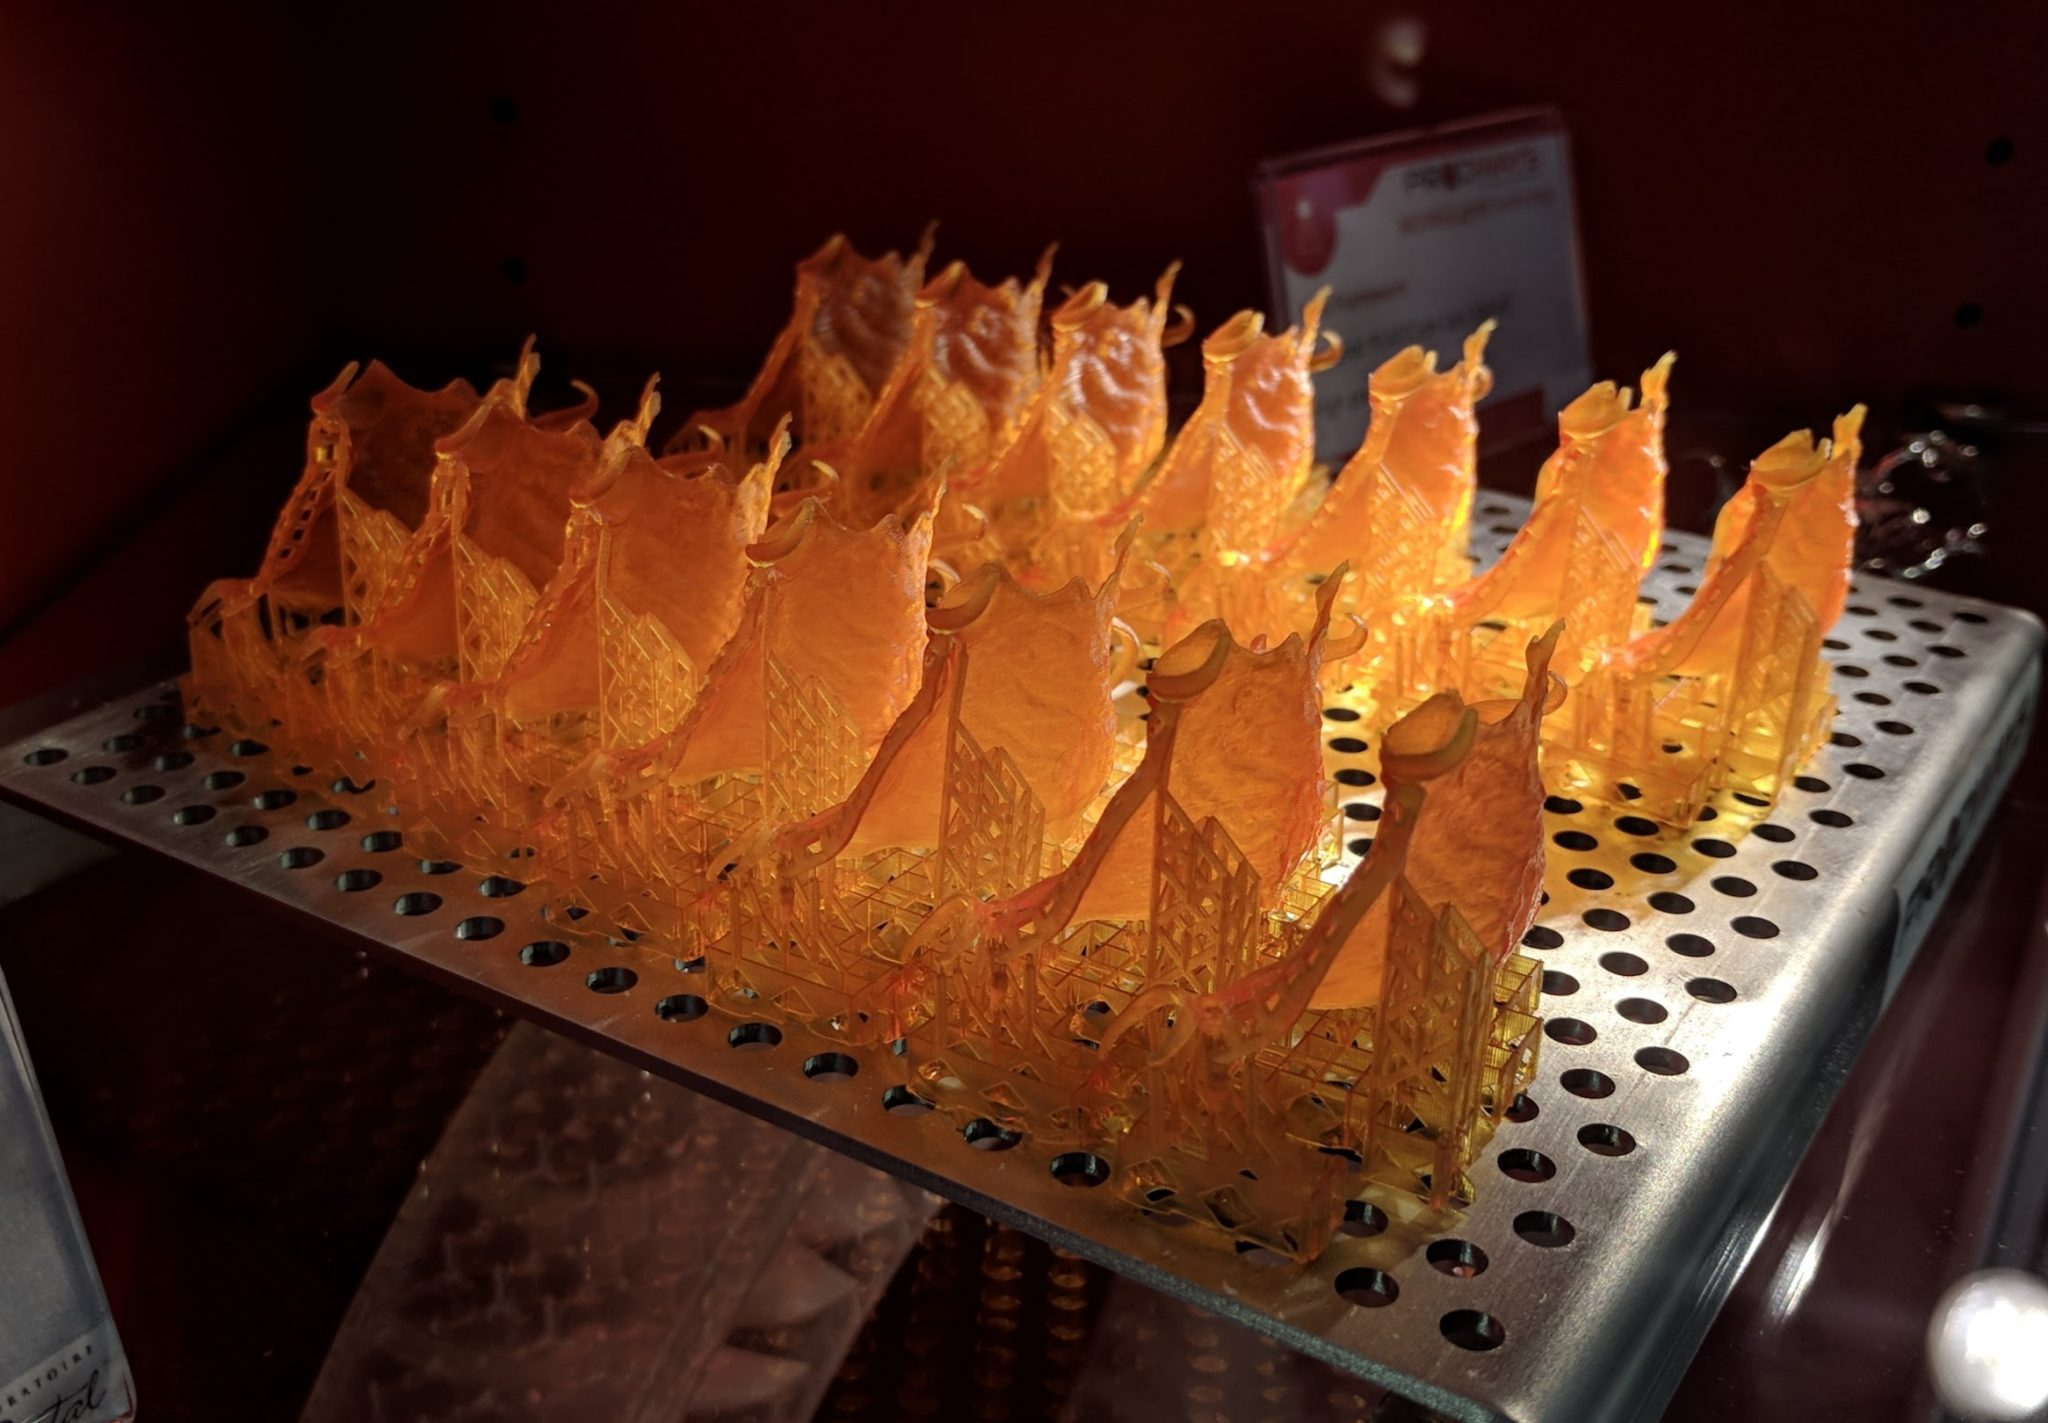 Prodways-high-precision-3D-printing.-Photo-by-Michael-Petch..jpg